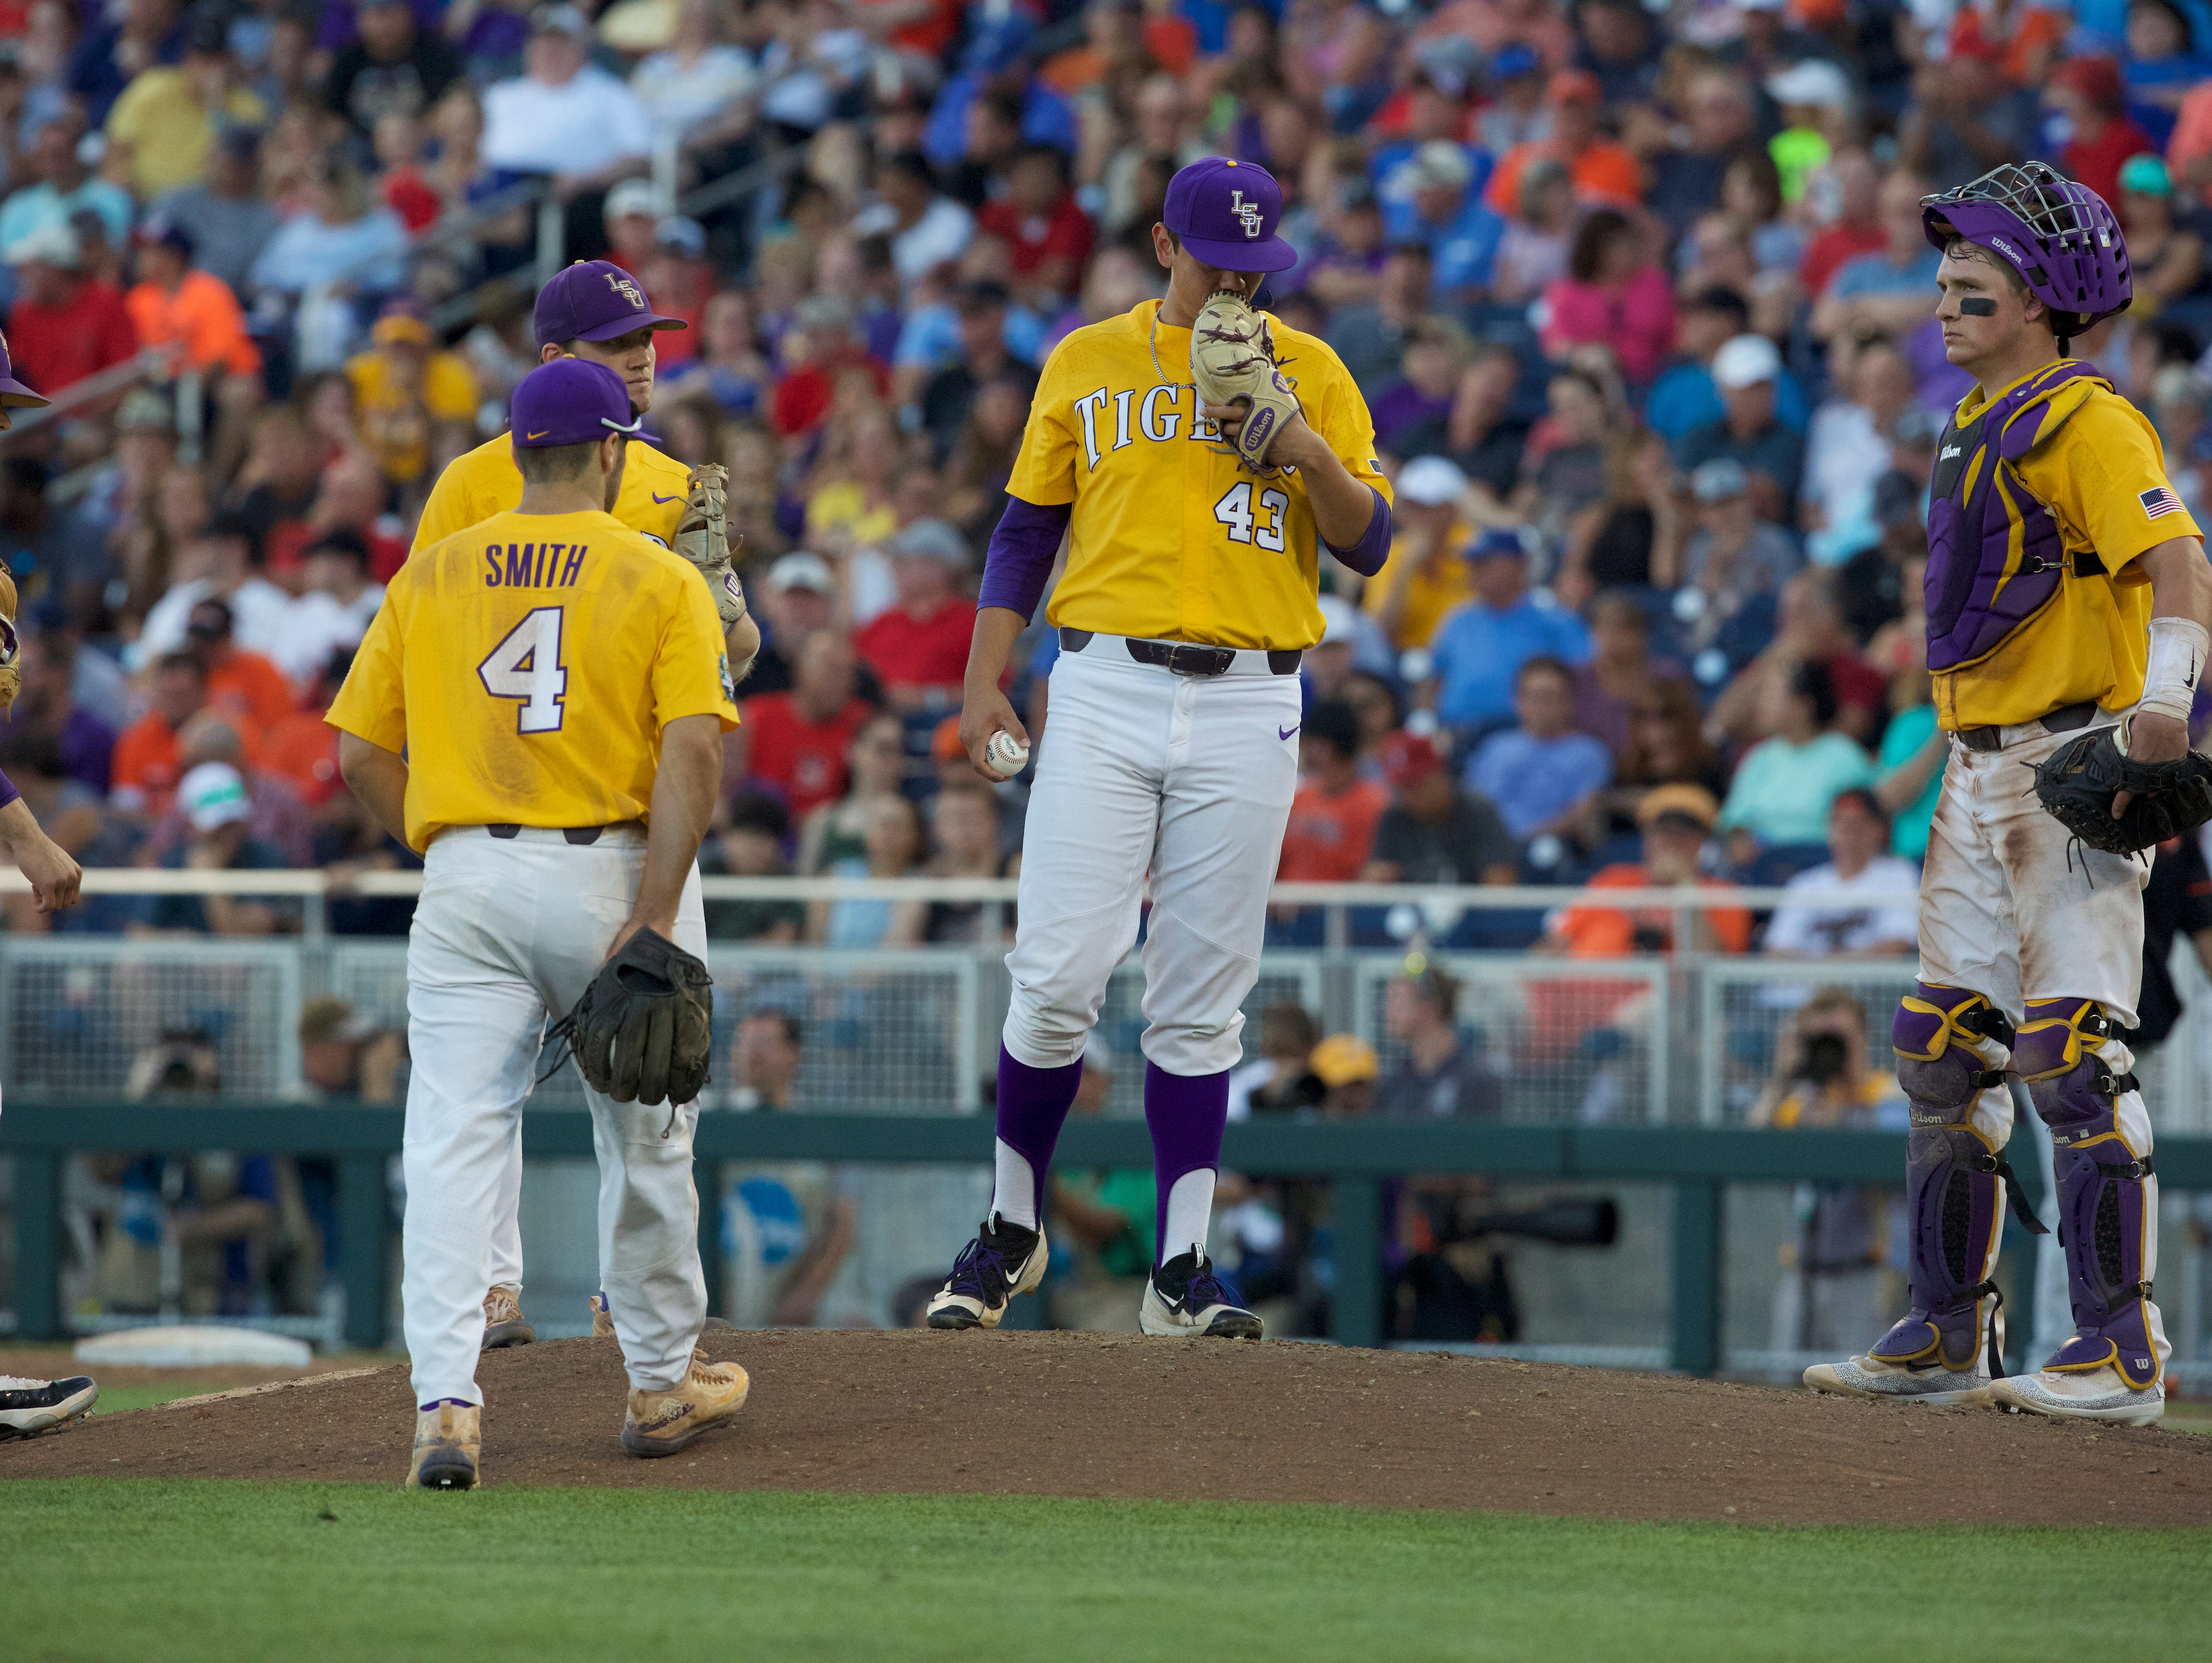 Jun 19, 2017; Omaha, NE, USA; LSU Tigers pitcher Todd Peterson (43) leaves the mound during the game against the Oregon State Beavers in the sixth inning at TD Ameritrade Park Omaha. Mandatory Credit: Bruce Thorson-USA TODAY Sports